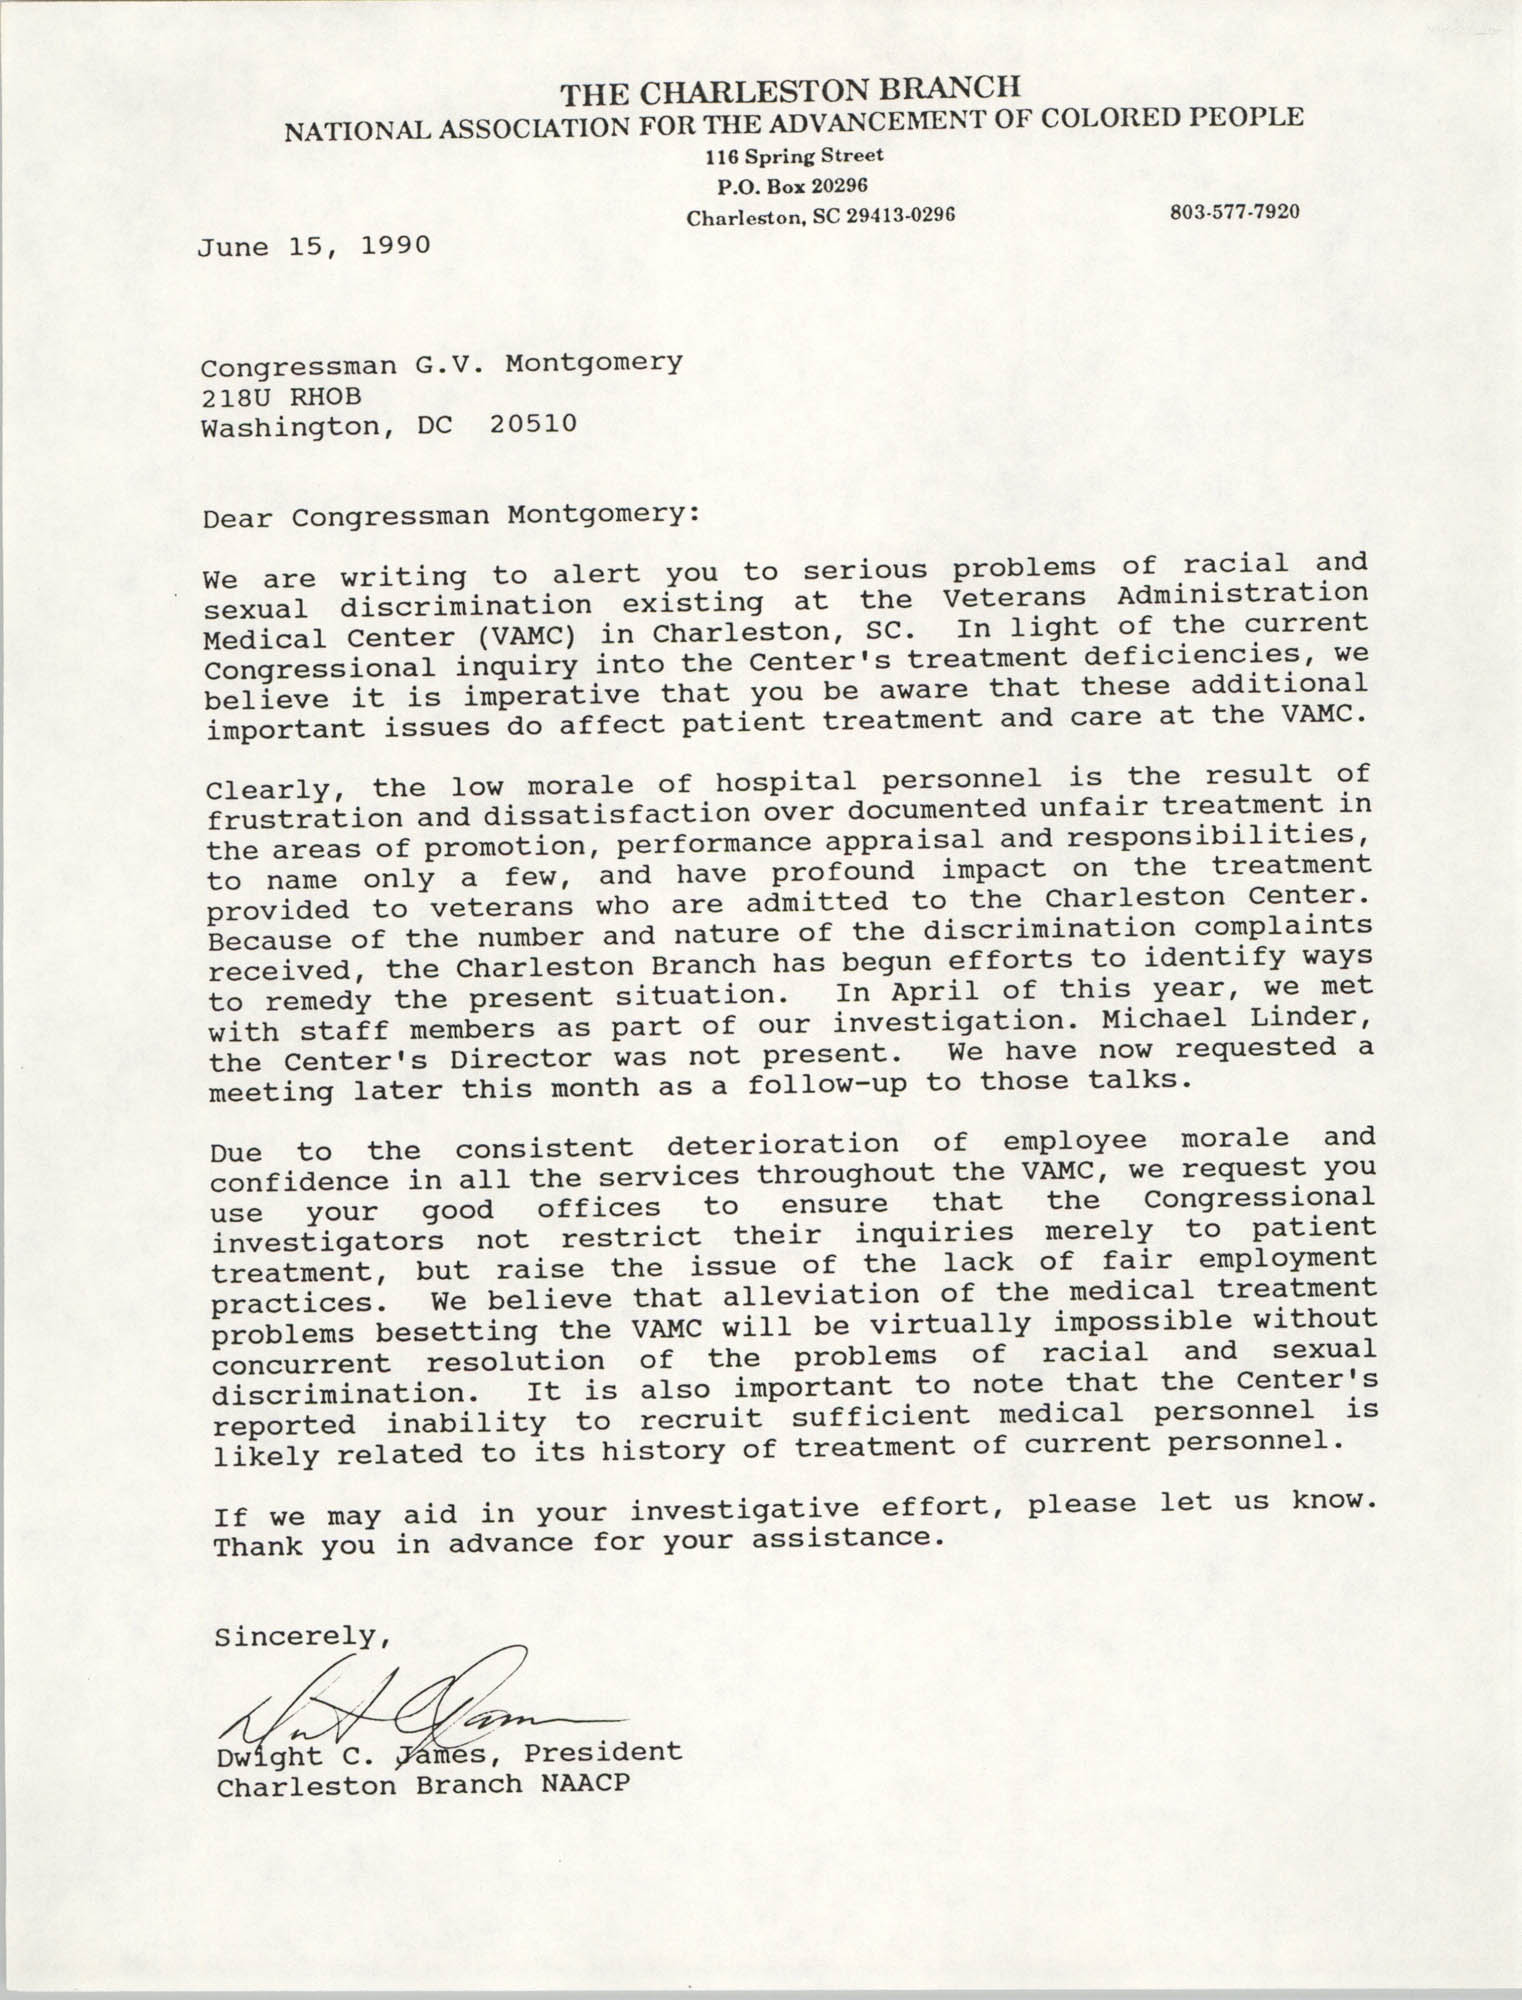 Letter from Dwight C. James to G.V. Montgomery, June 15, 1990